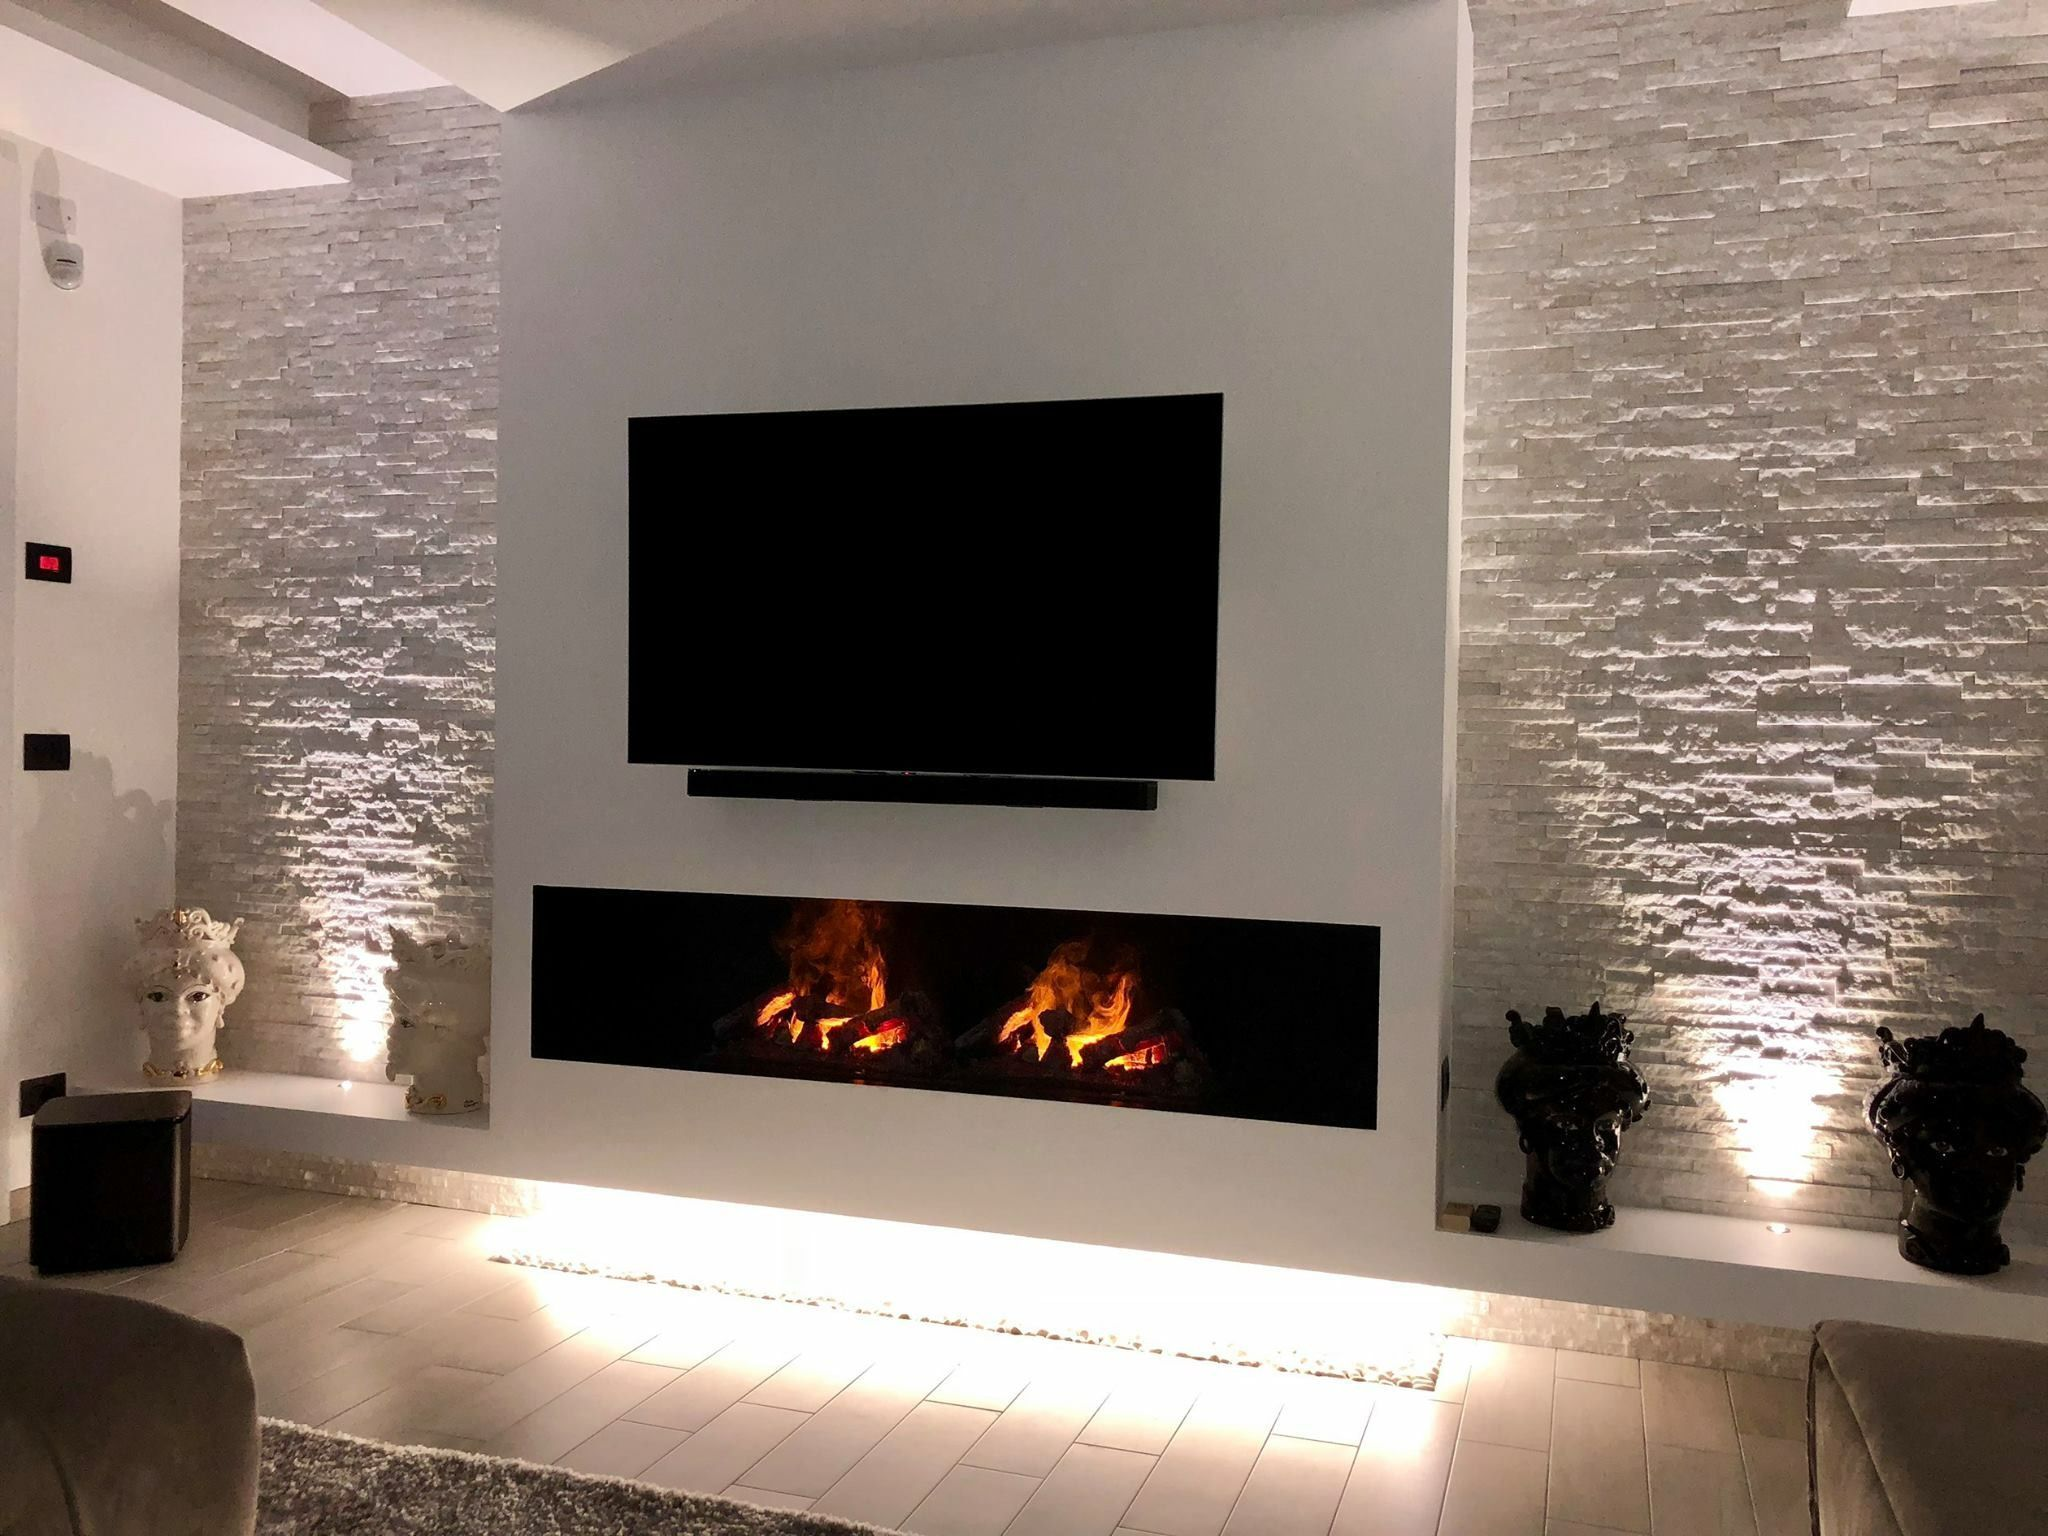 Decoration Homedecor Homedesign Homeideas Kamin Mit Wand Tv Wand Mit Kamin Deco Electric Fireplace Living Room Fireplace Tv Wall Contemporary Fireplace